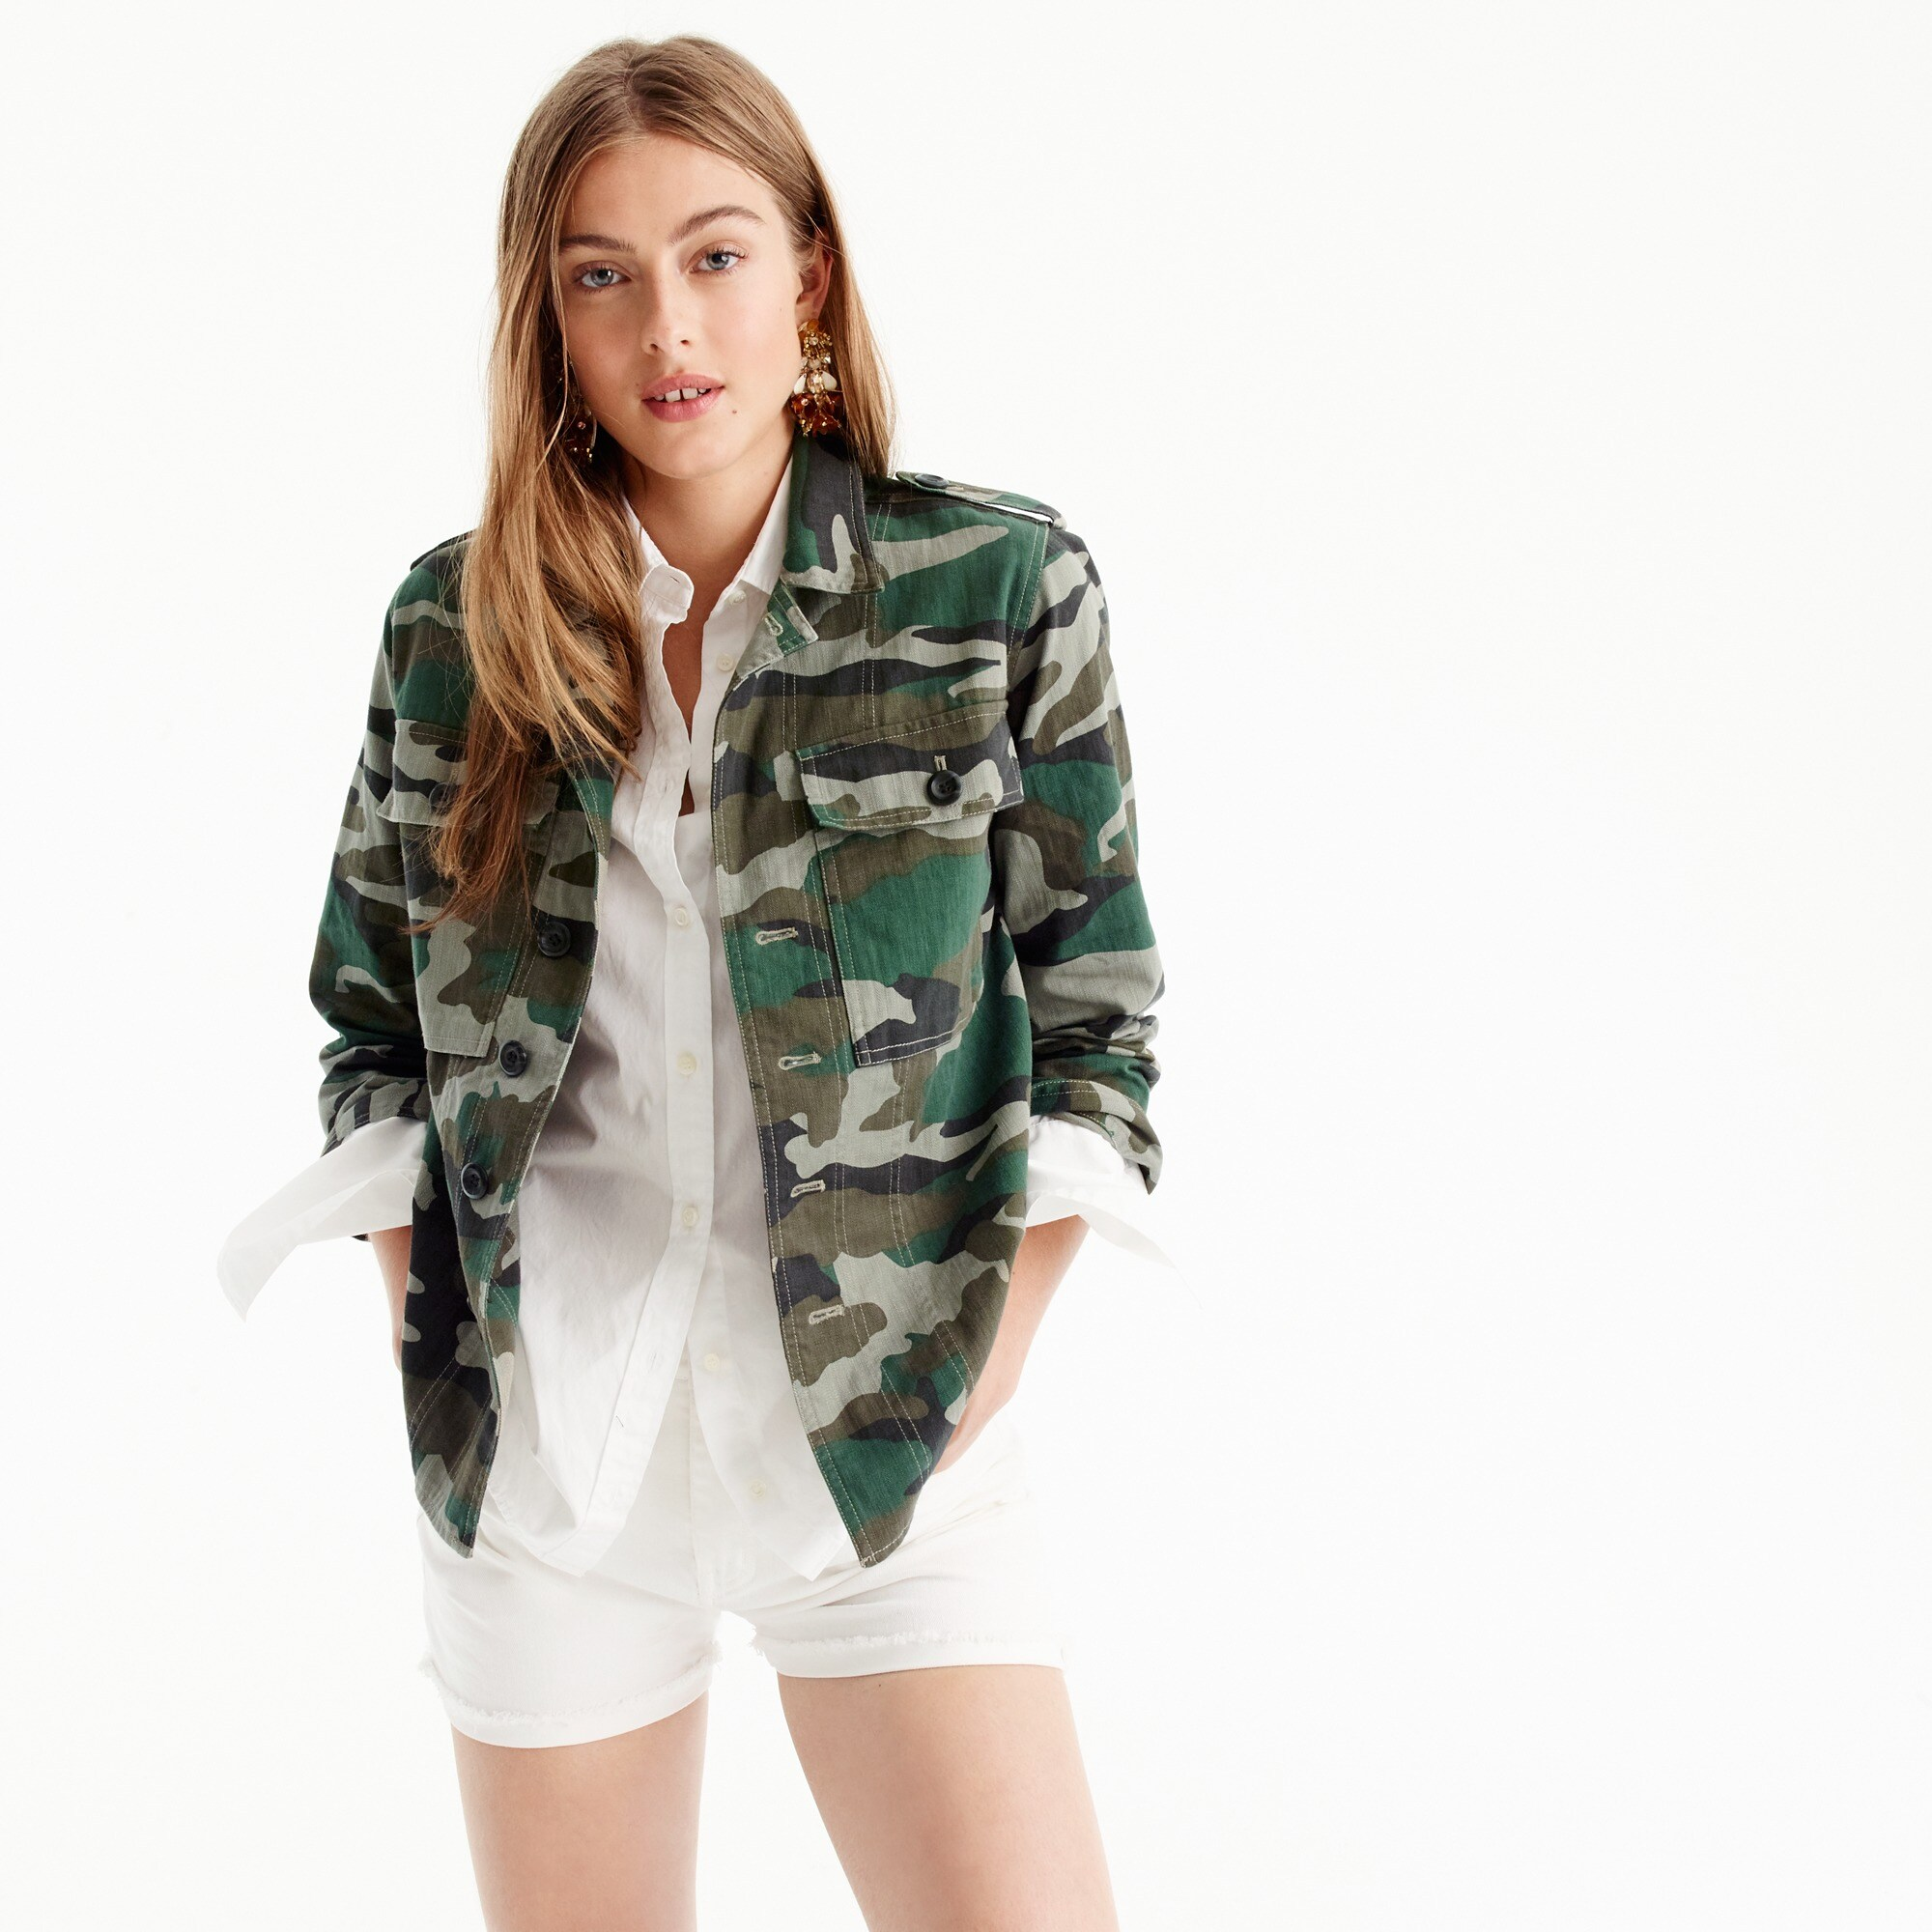 tall camouflage utility shirt-jacket : women tall